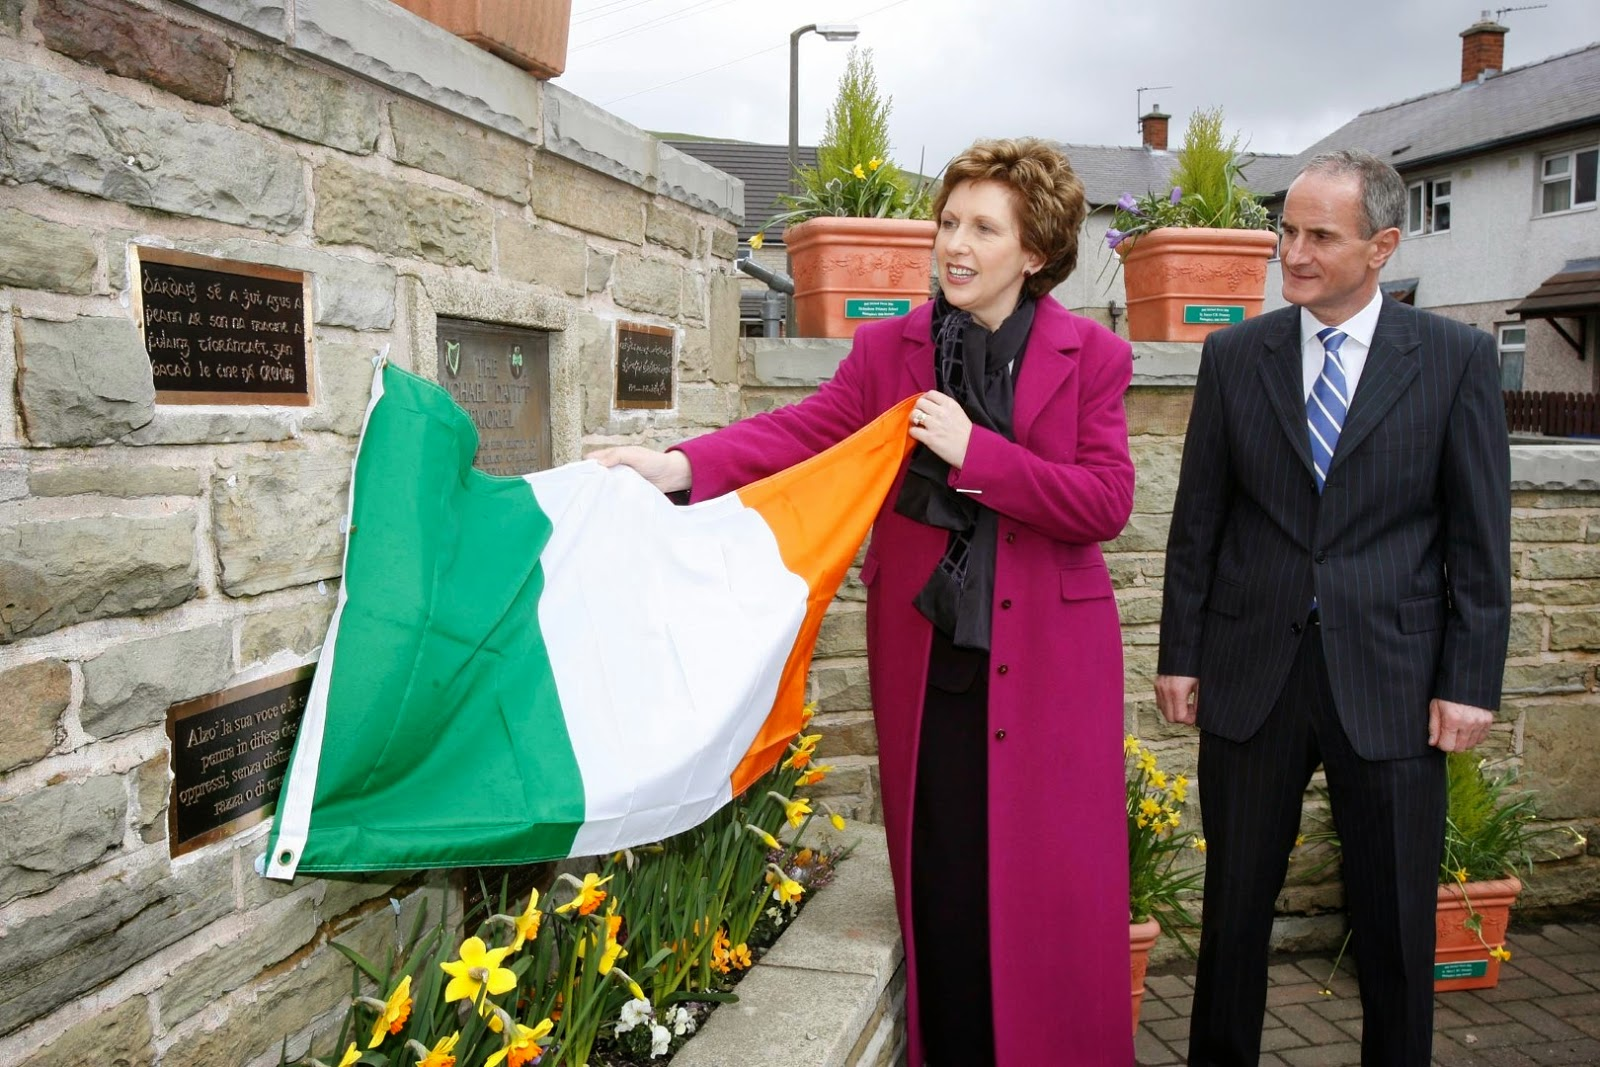 President Of Ireland Mary McAleese Unveiling The Irish Flag To Show The New  Inscriptions At The Davitt Memorial On Wilkinson Street On 12th April 2006  Mr Cavendish I Presume